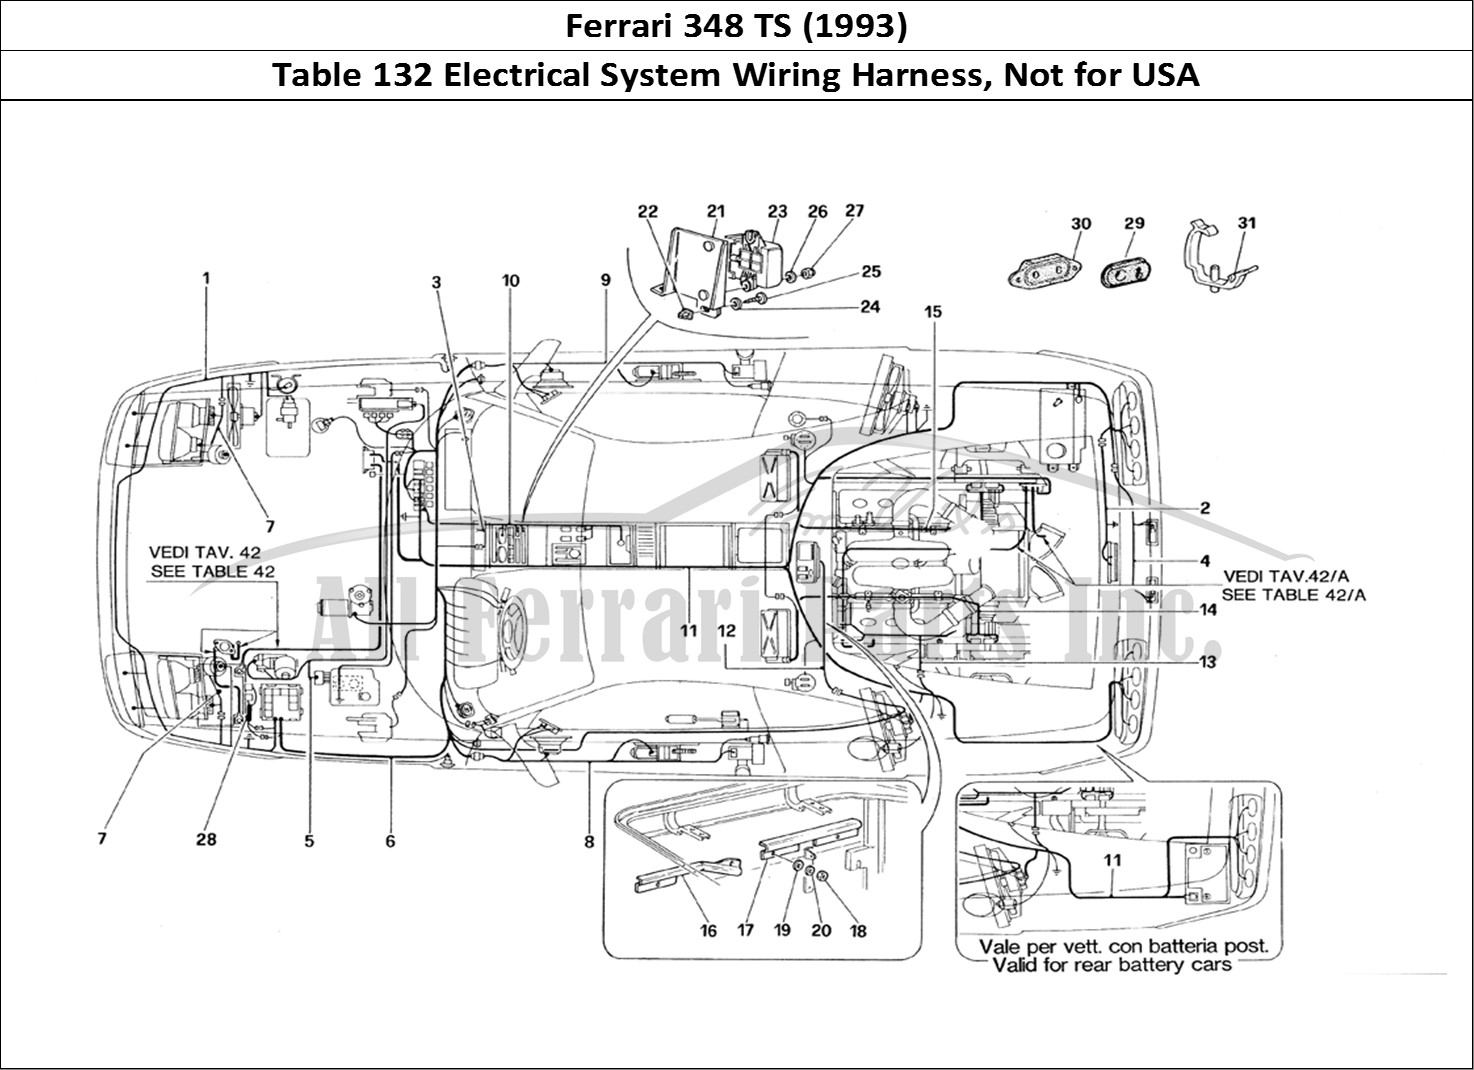 buy original ferrari 348 ts  1993  132 electrical system wiring harness  not for usa ferrari